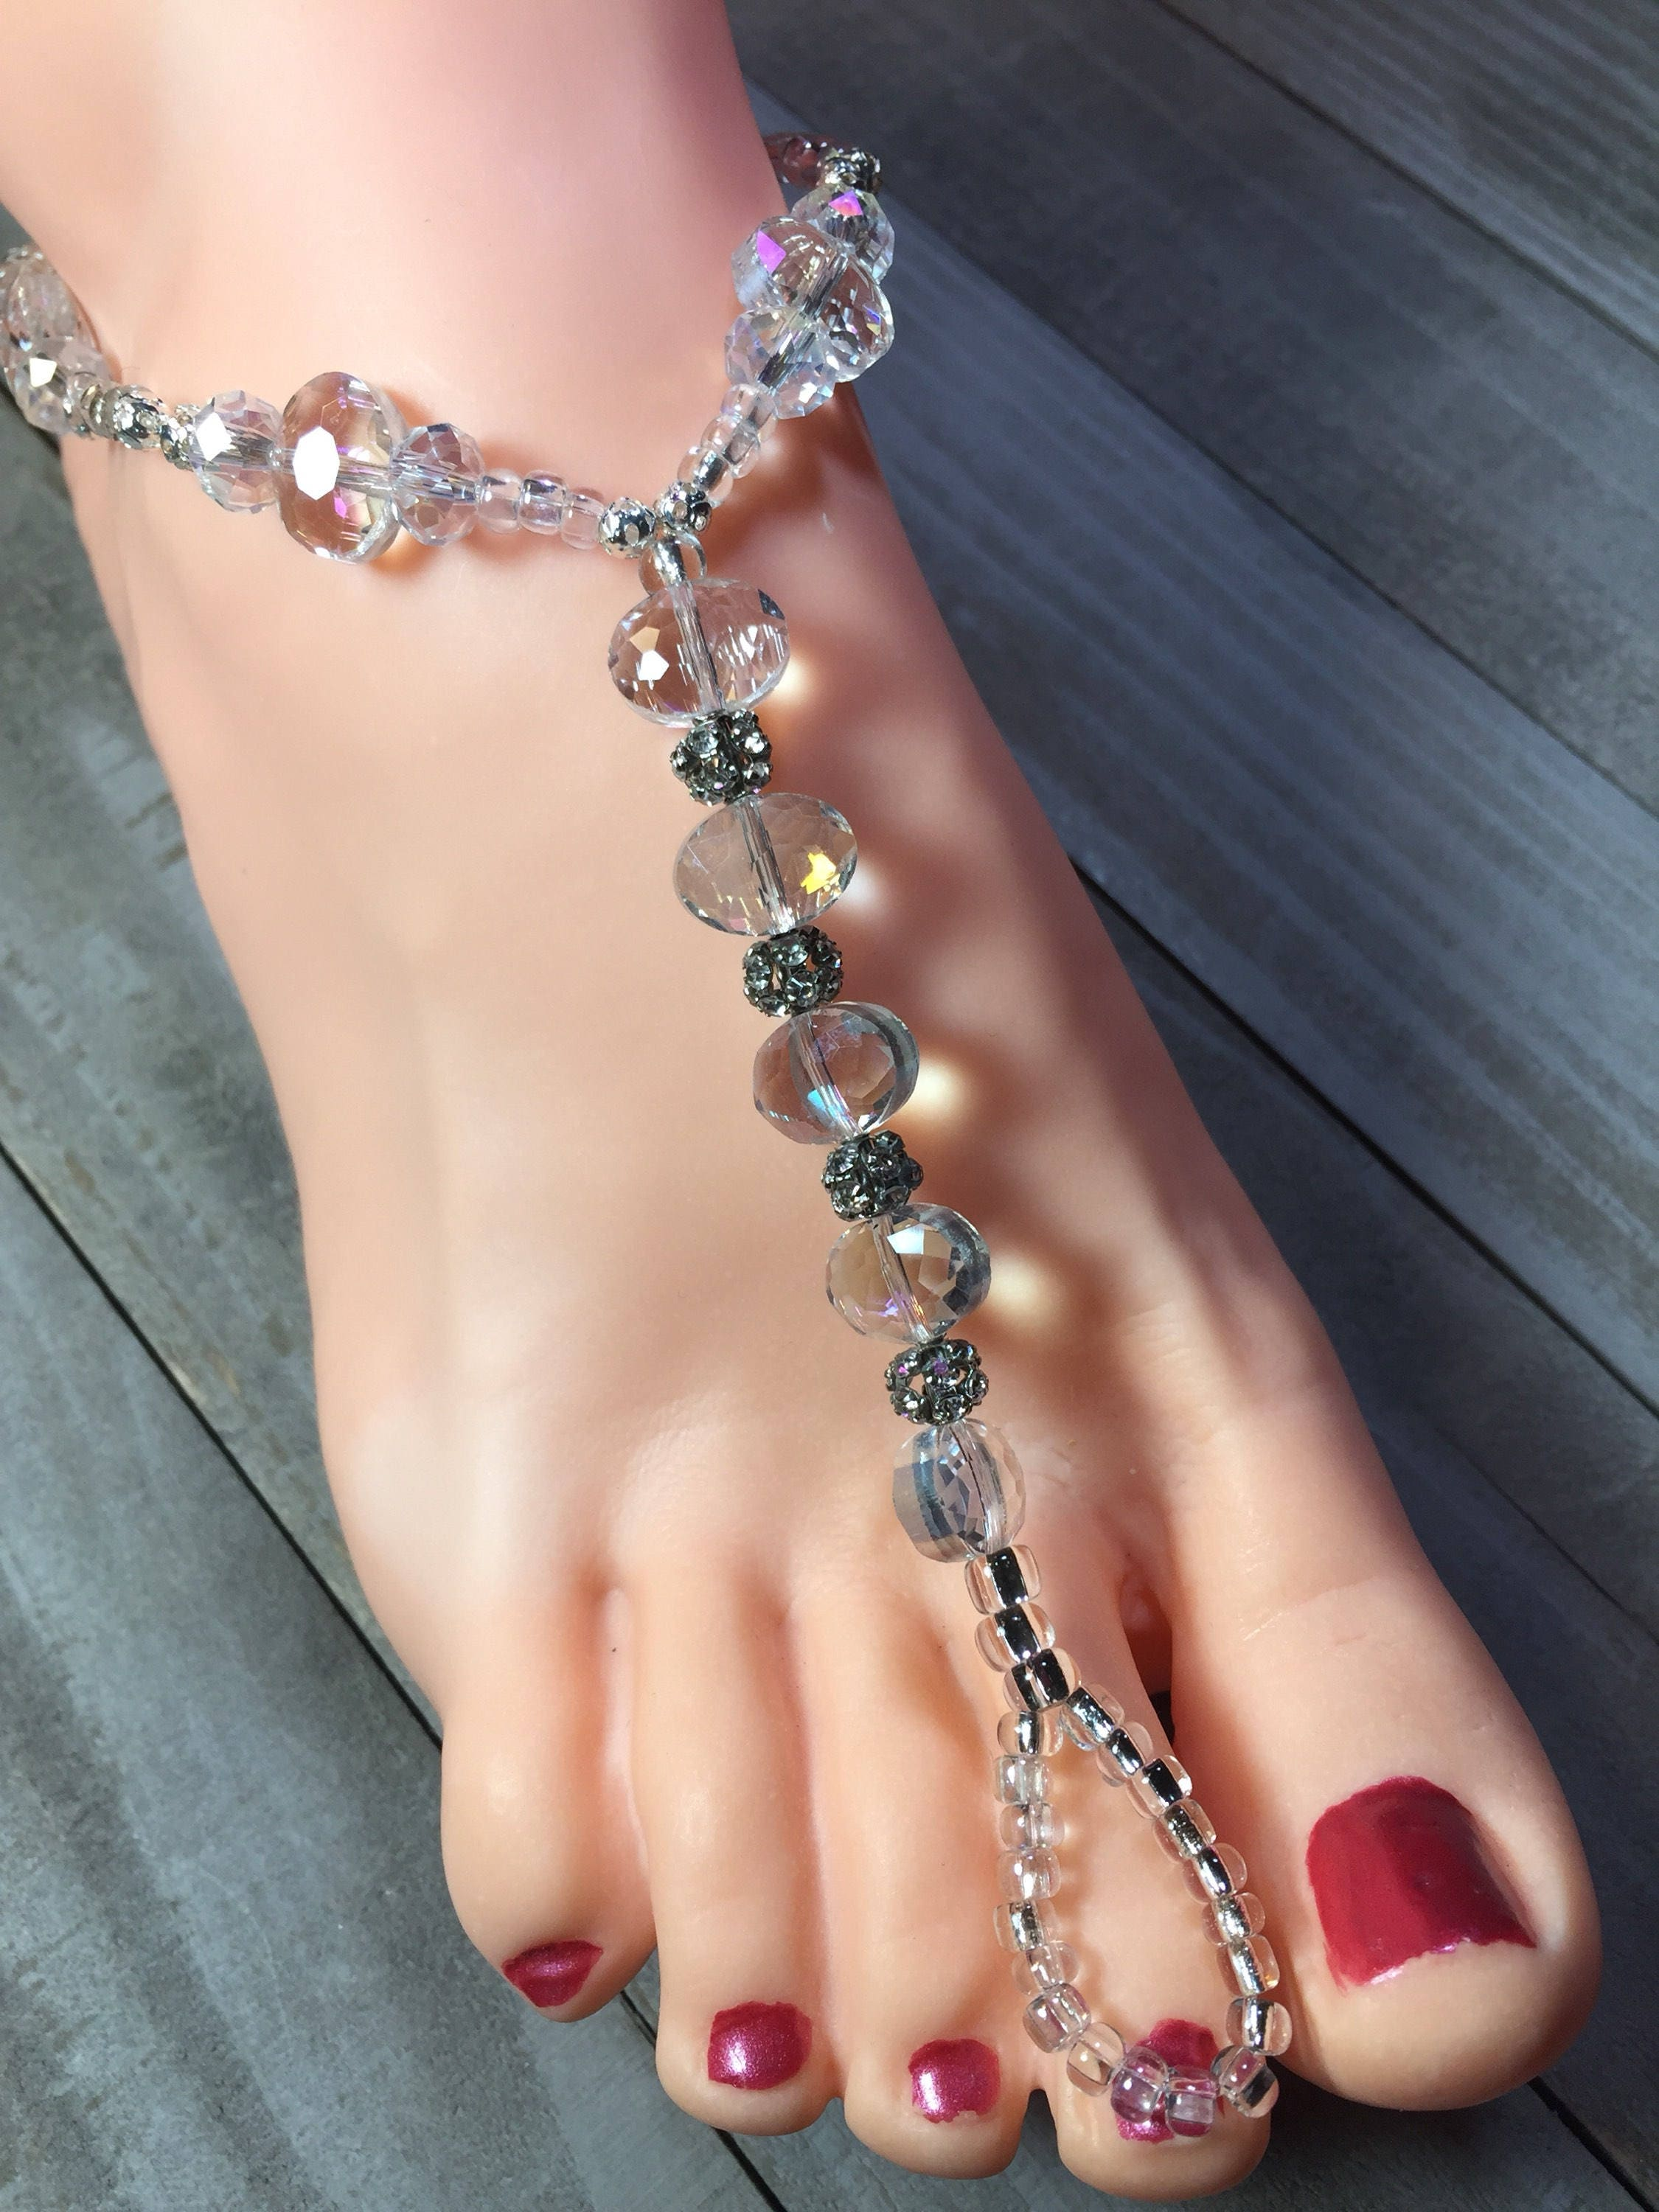 accessory crystal wedding toe sandal foot m barefoot collections with jewelry chain r products rhinestone ring anklet boutique beach